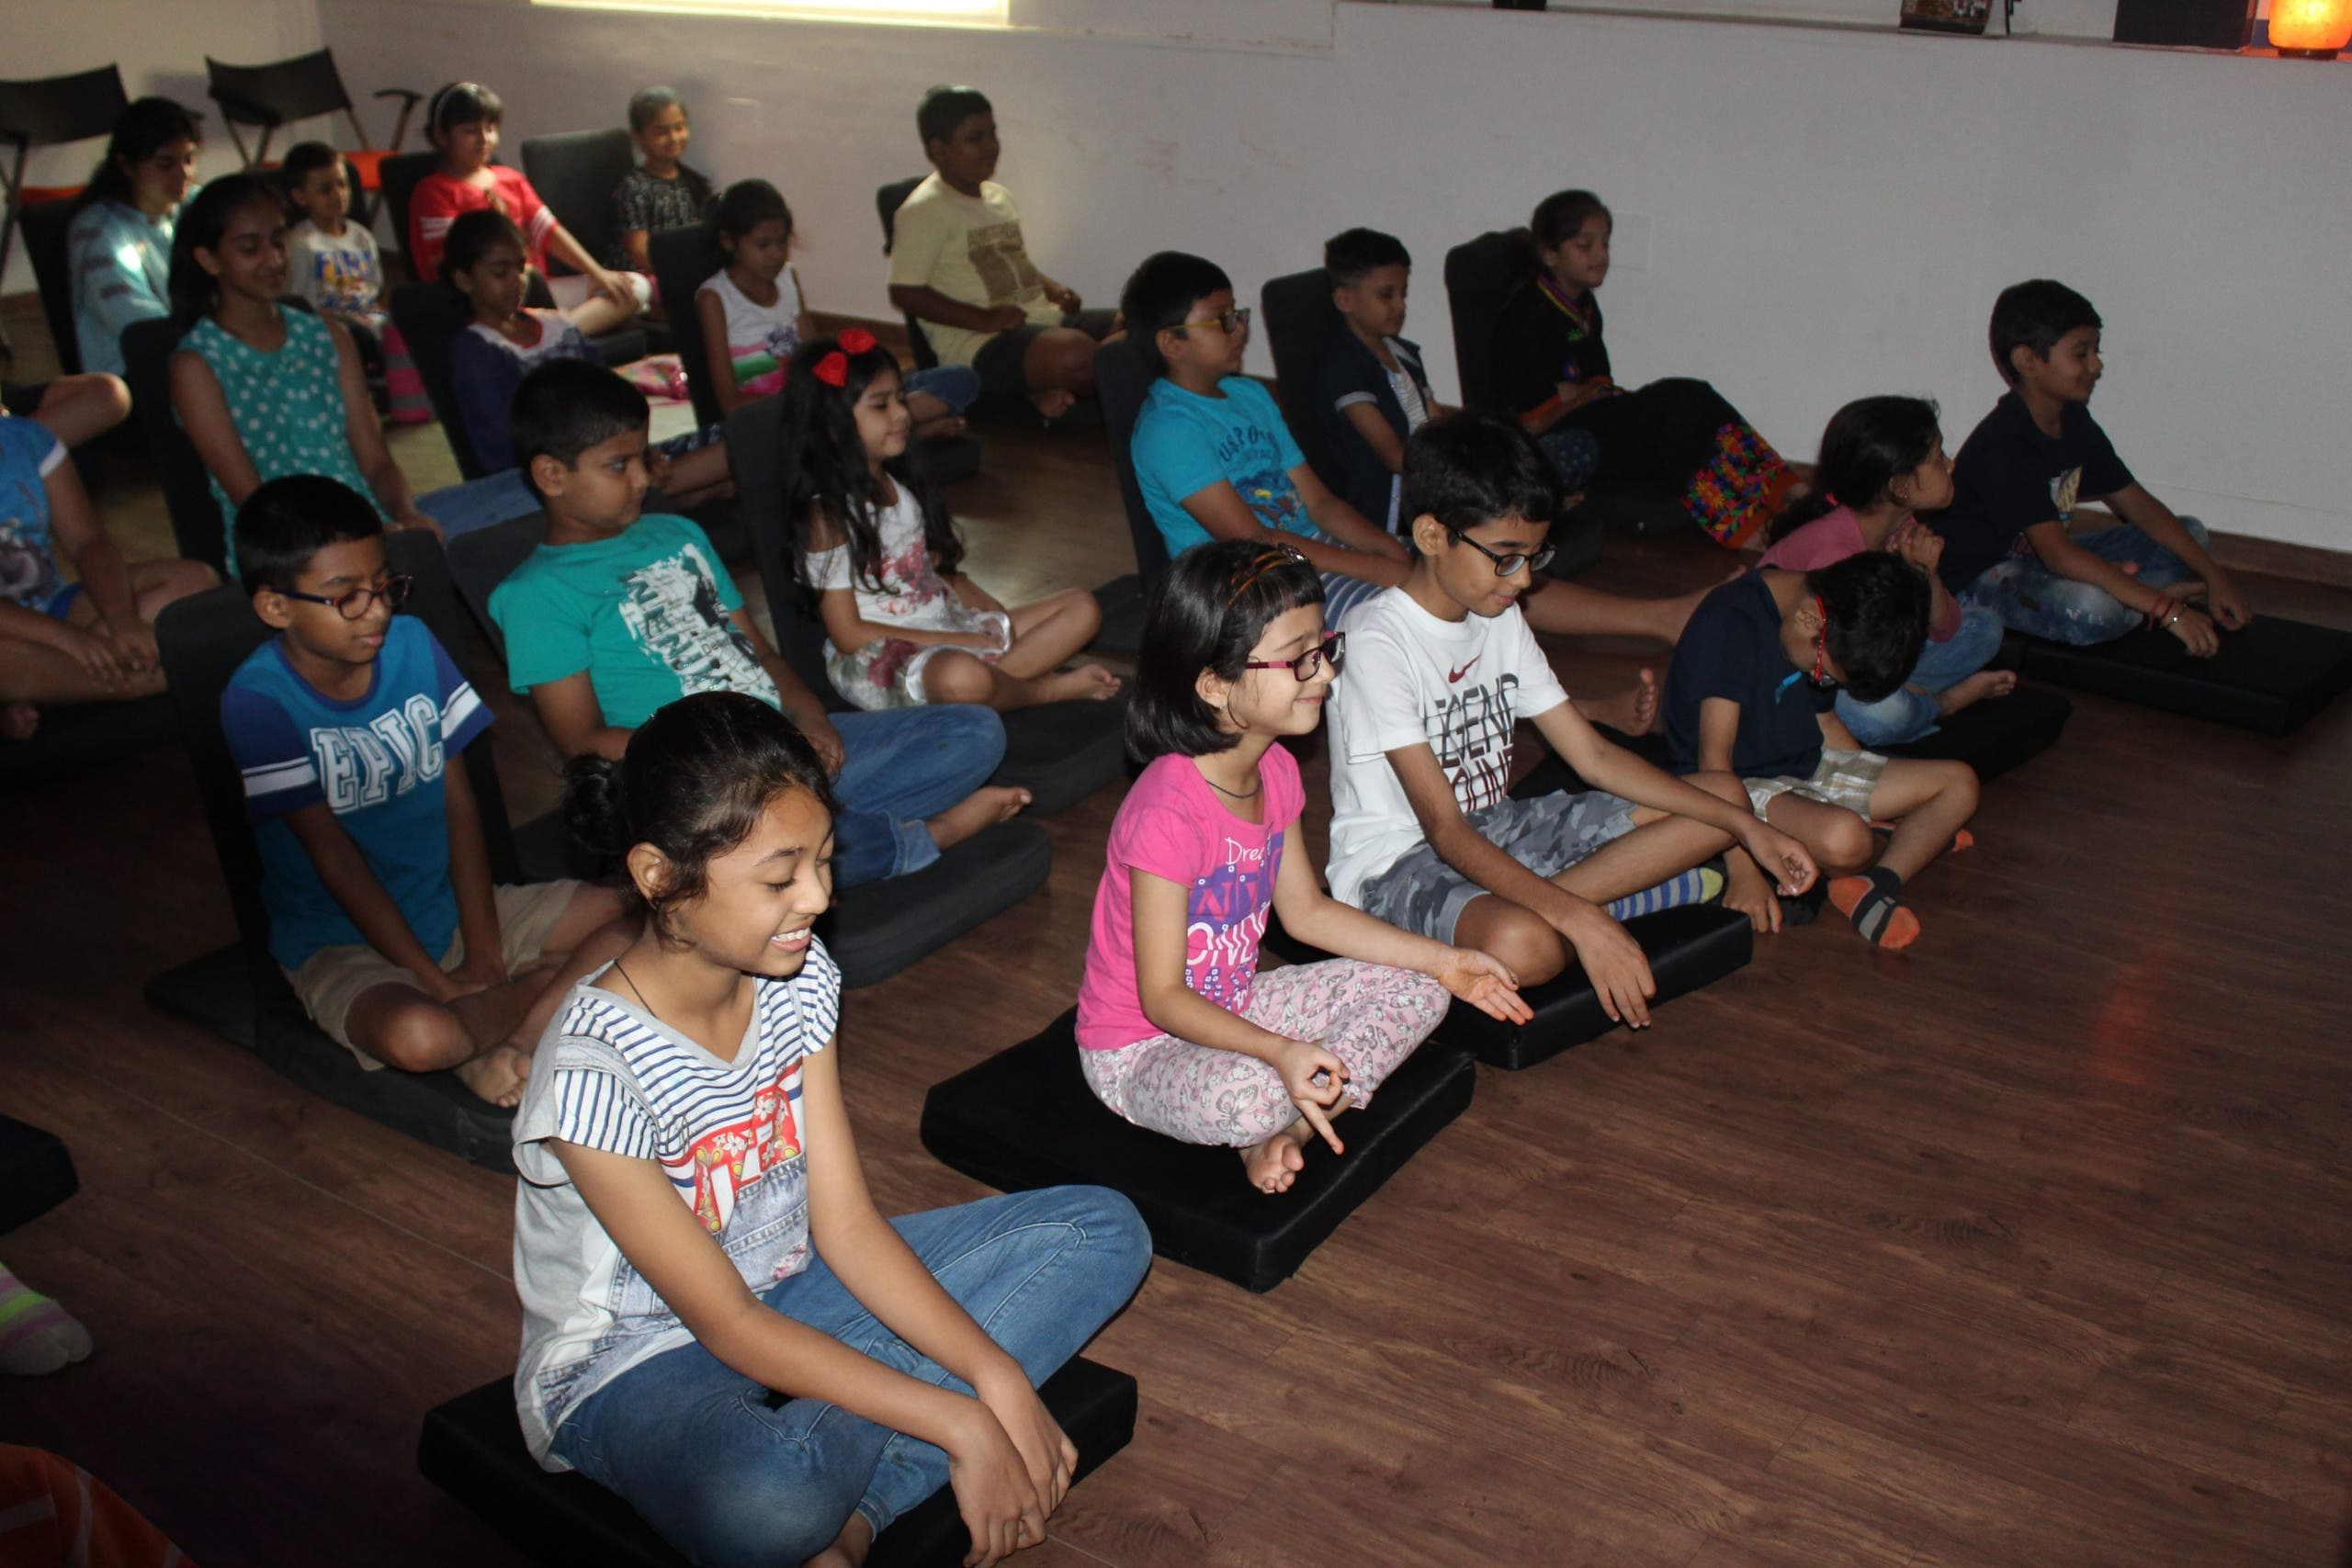 Ahmedabad's Loving Centre for Transformation organizes special meditation sessions for children. (Supplied)